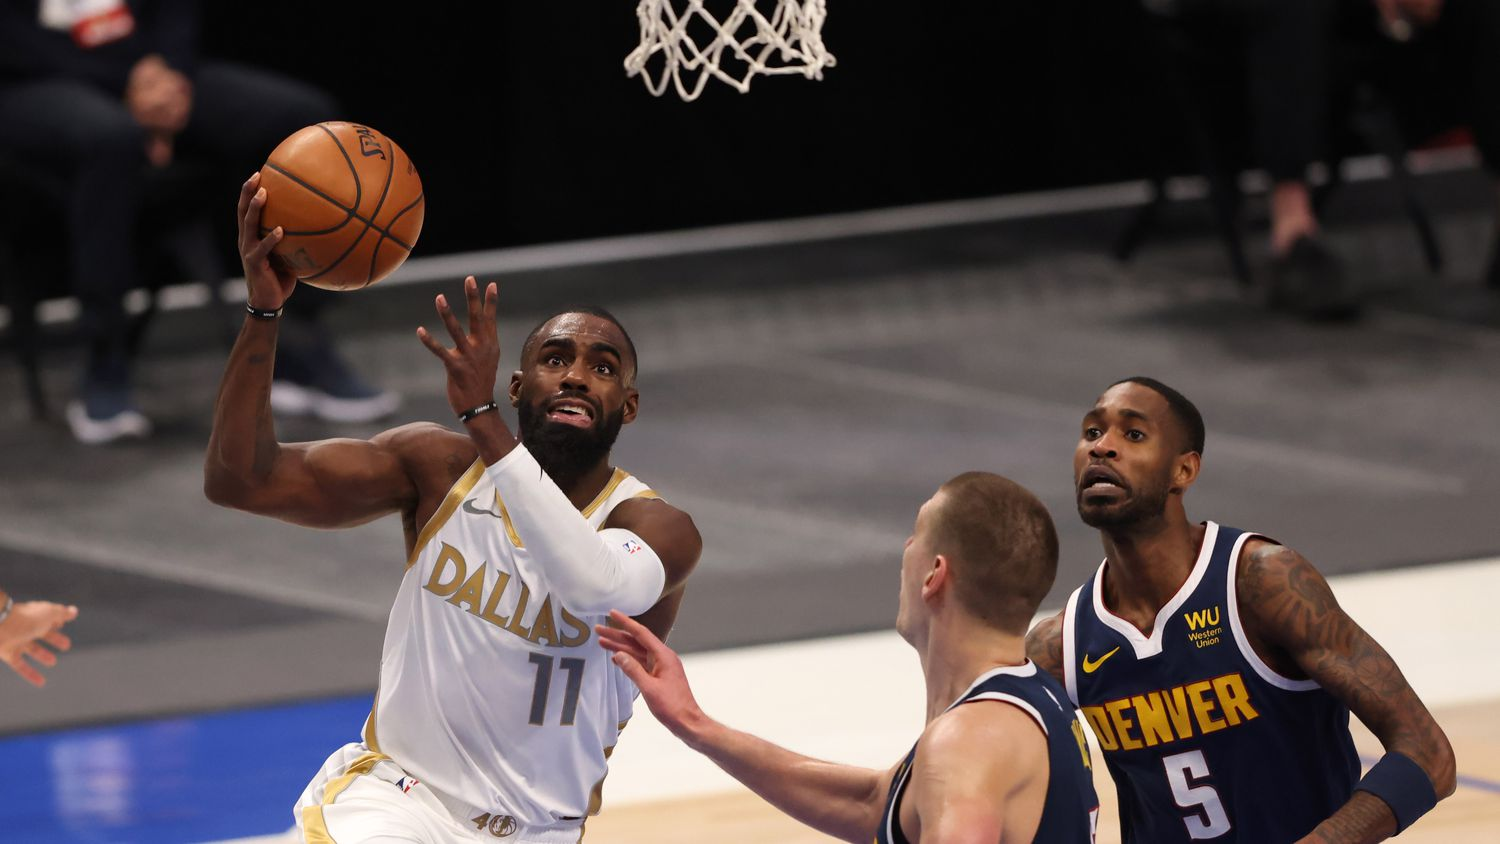 Dallas Mavericks forward Tim Hardaway Jr. (11) attempts a layup in front of Denver Nuggets center Nikola Jokic (15) and Denver Nuggets forward Will Barton III (5) during the first quarter of play at American Airlines Center on Monday, January 25, 2021in Dallas.